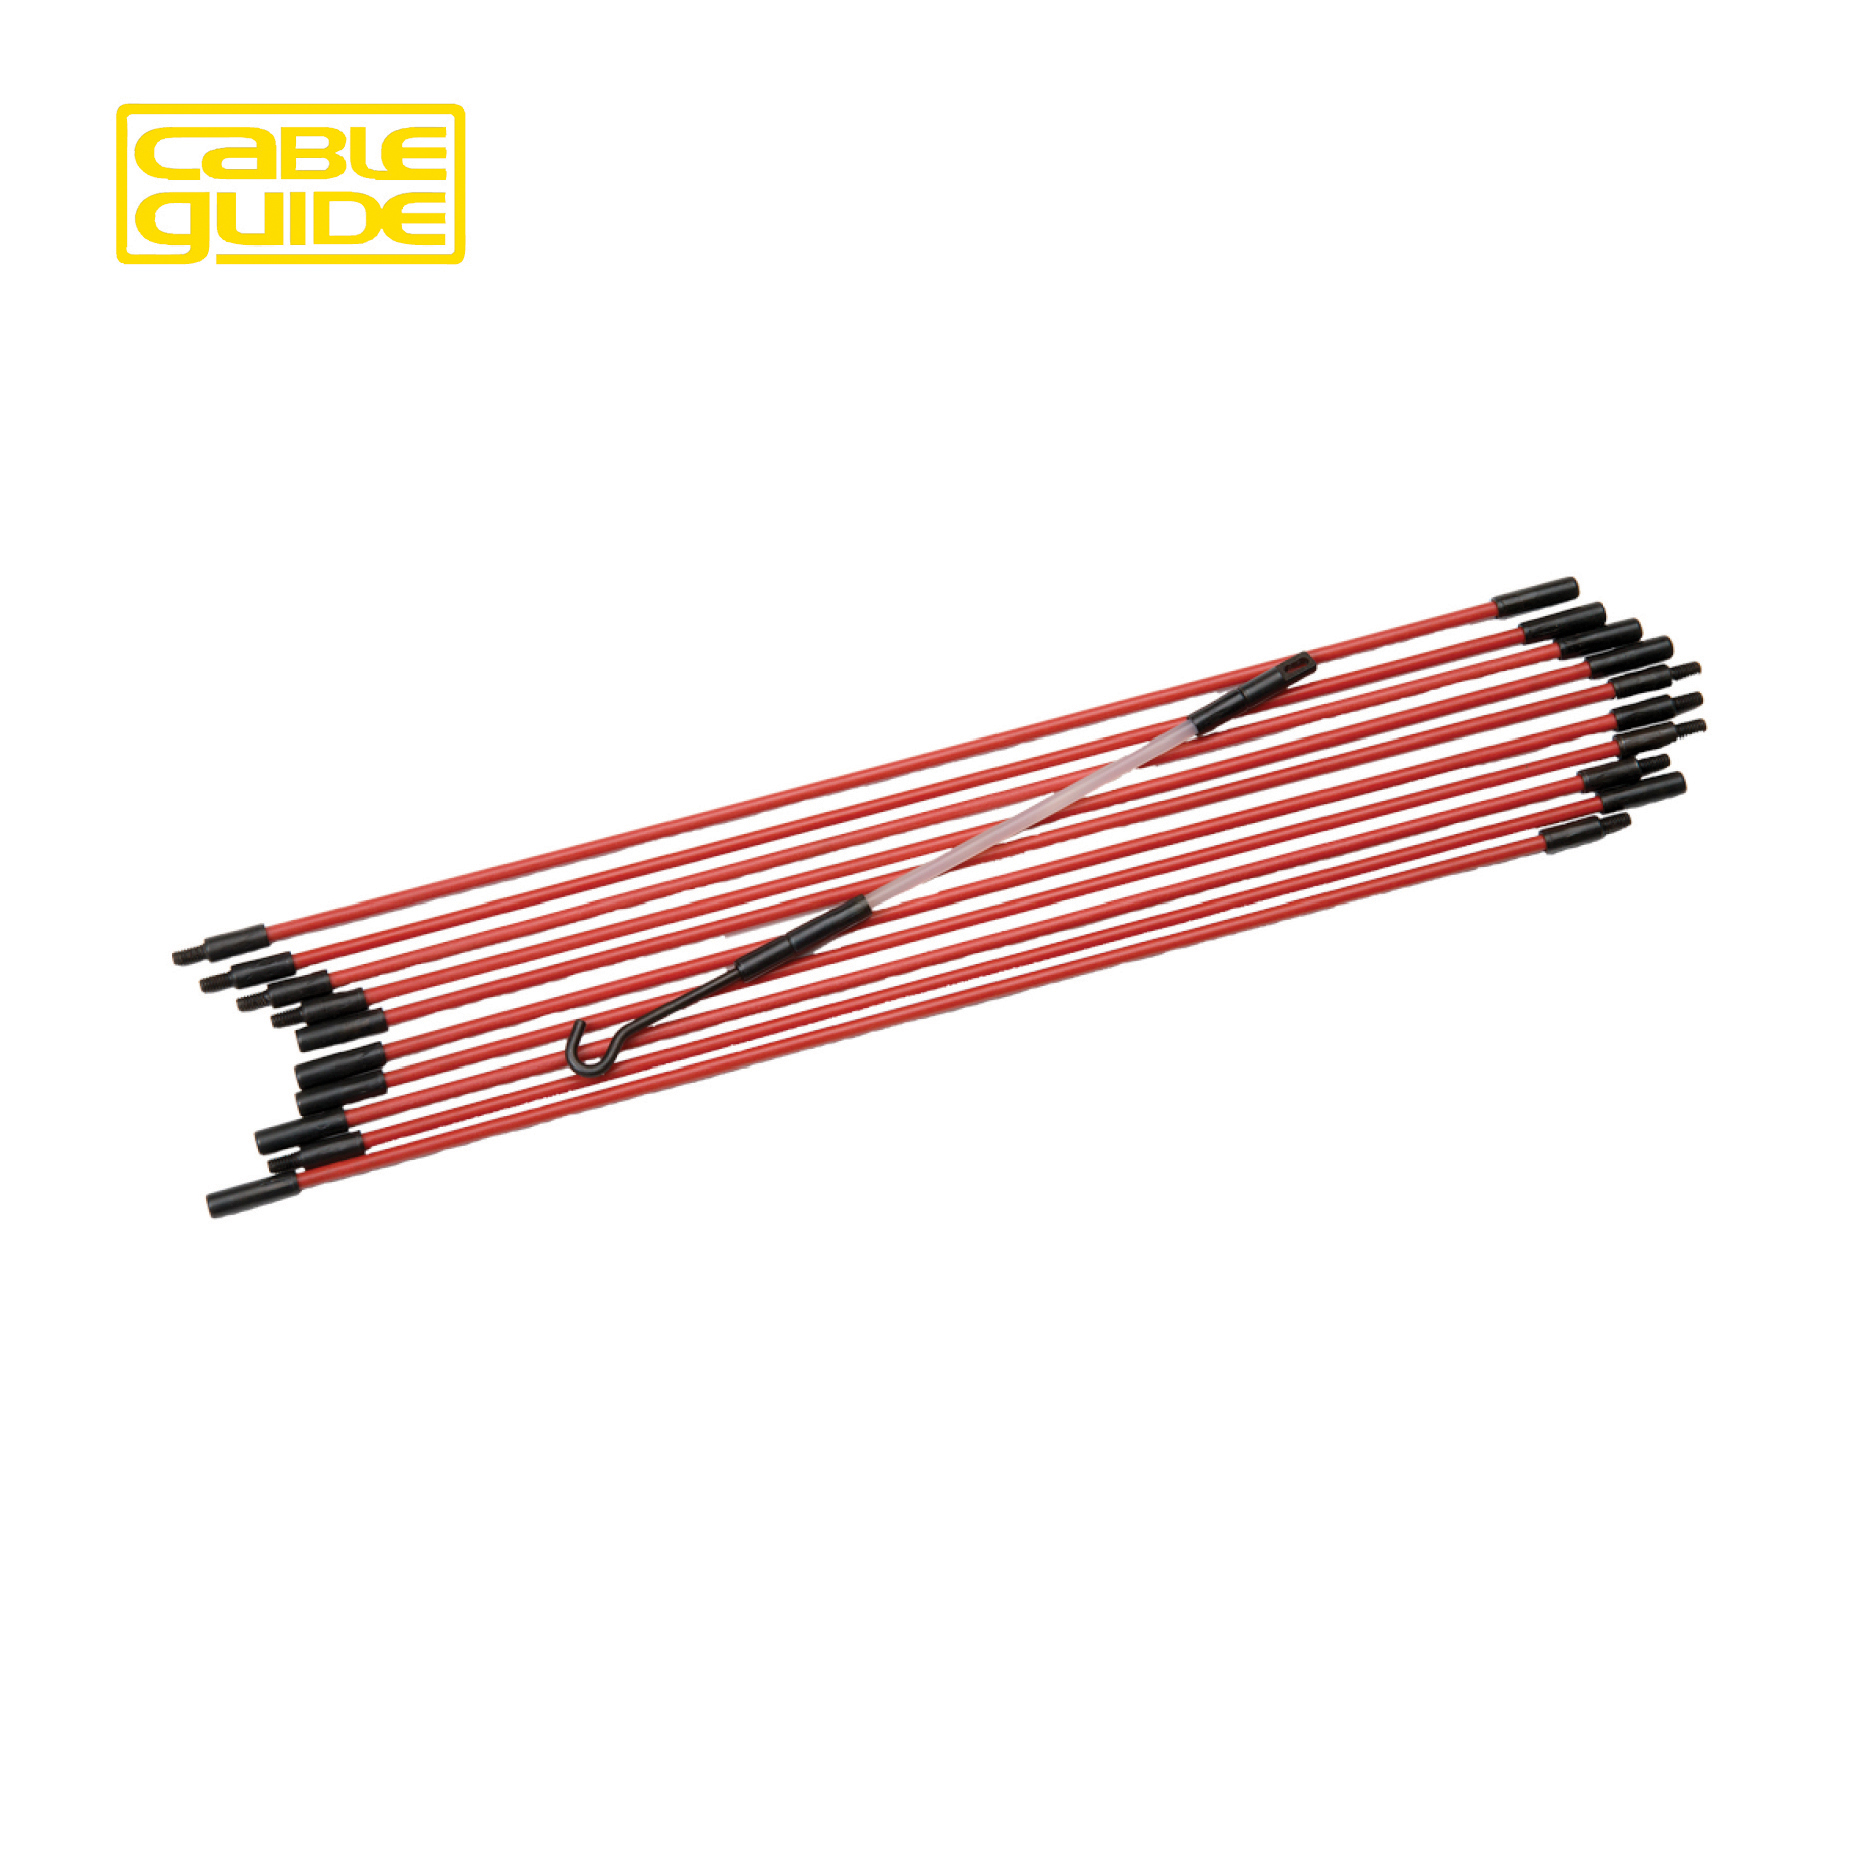 Cable Guide Rod